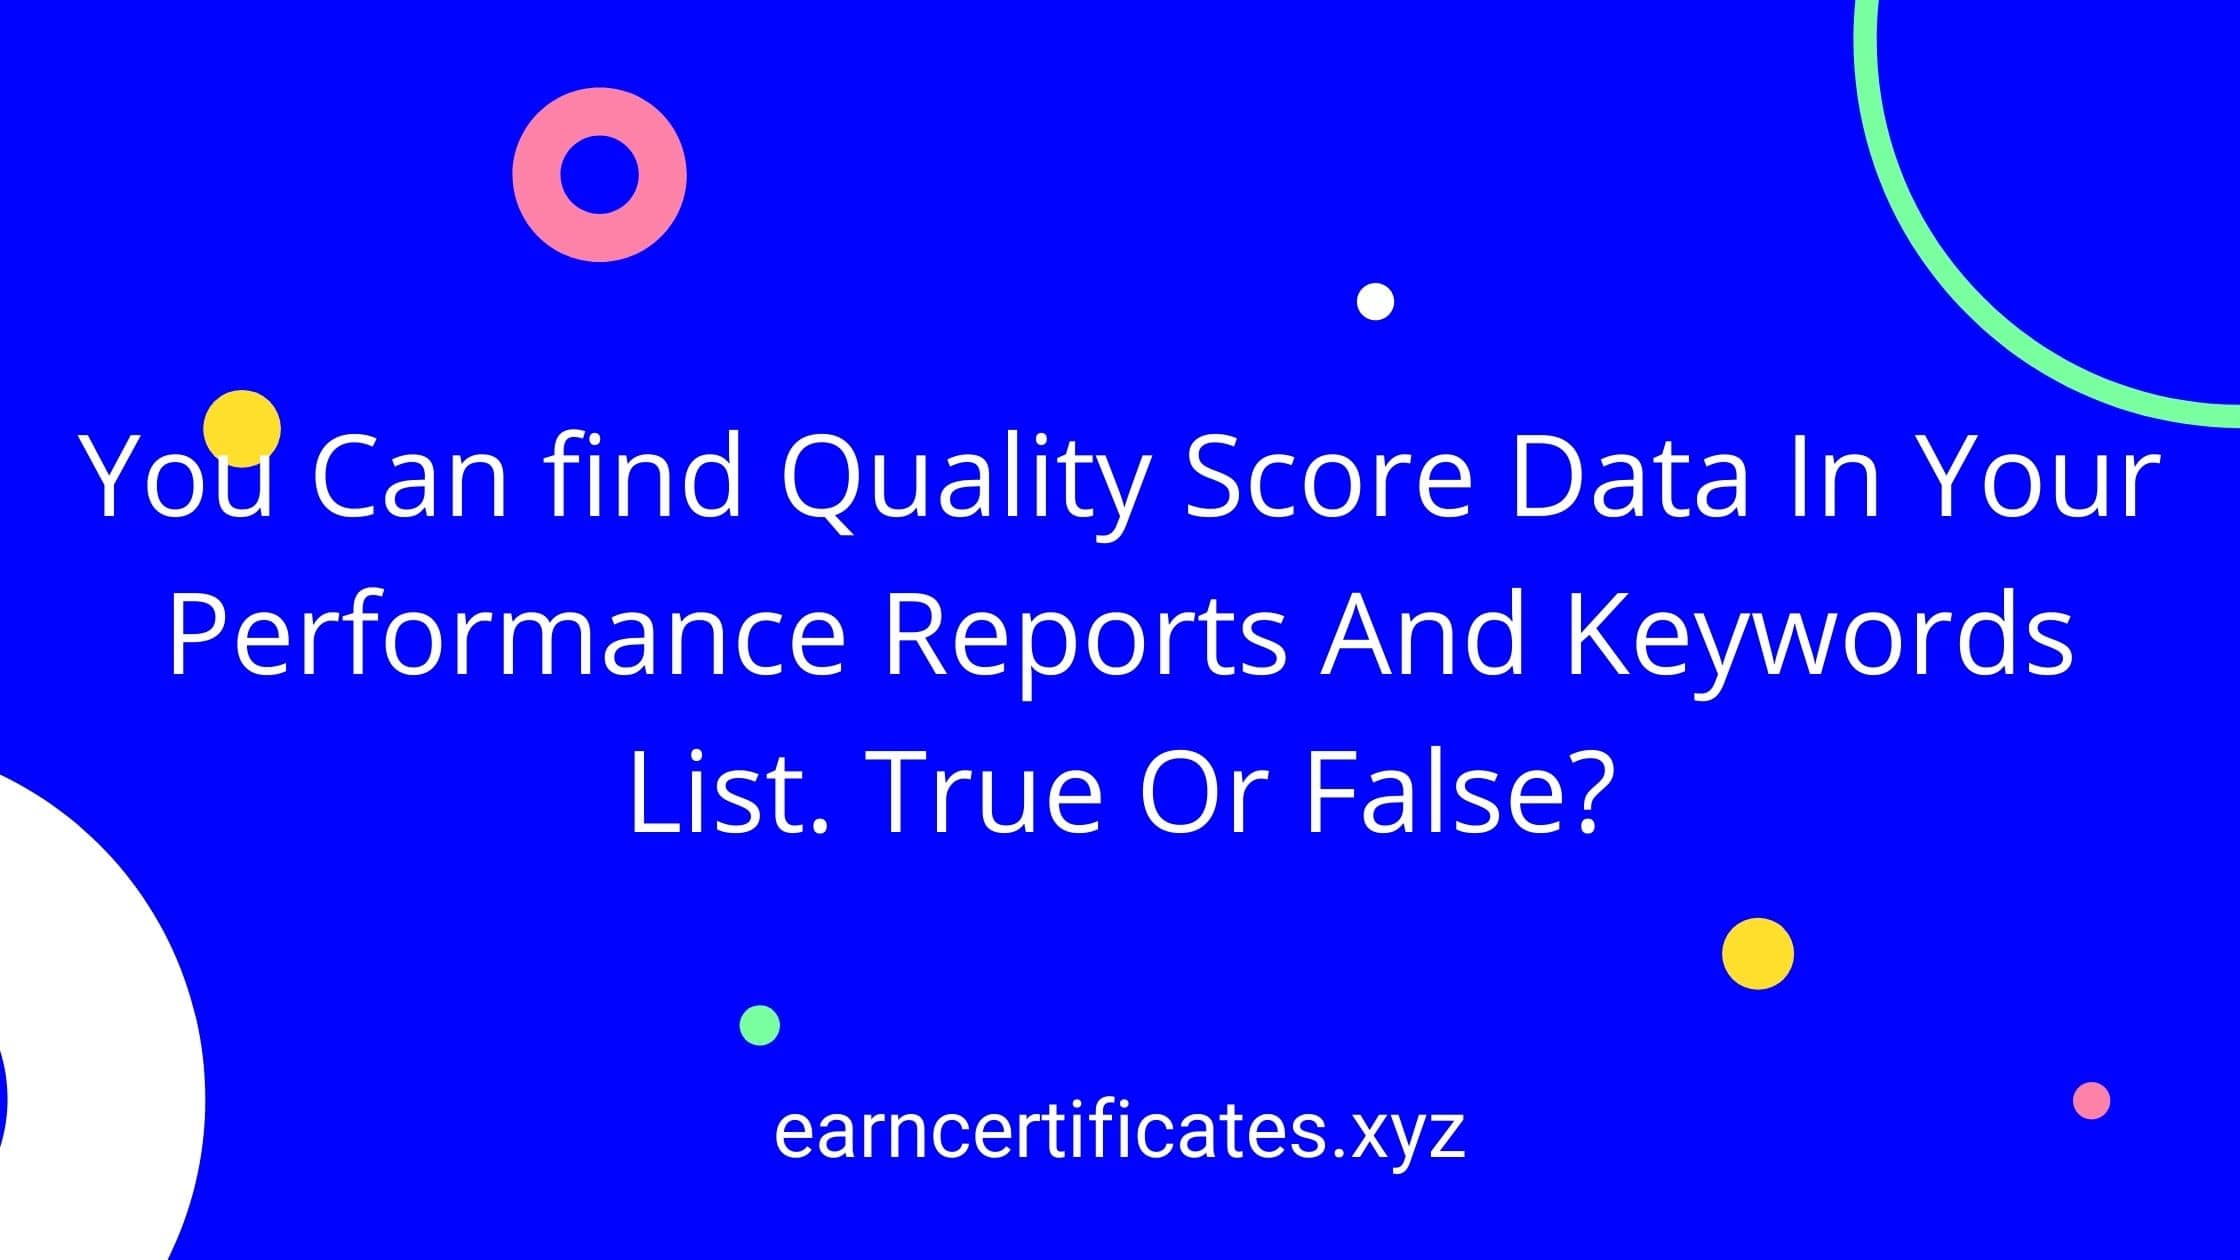 You Can find Quality Score Data In Your Performance Reports And Keywords List. True Or False?